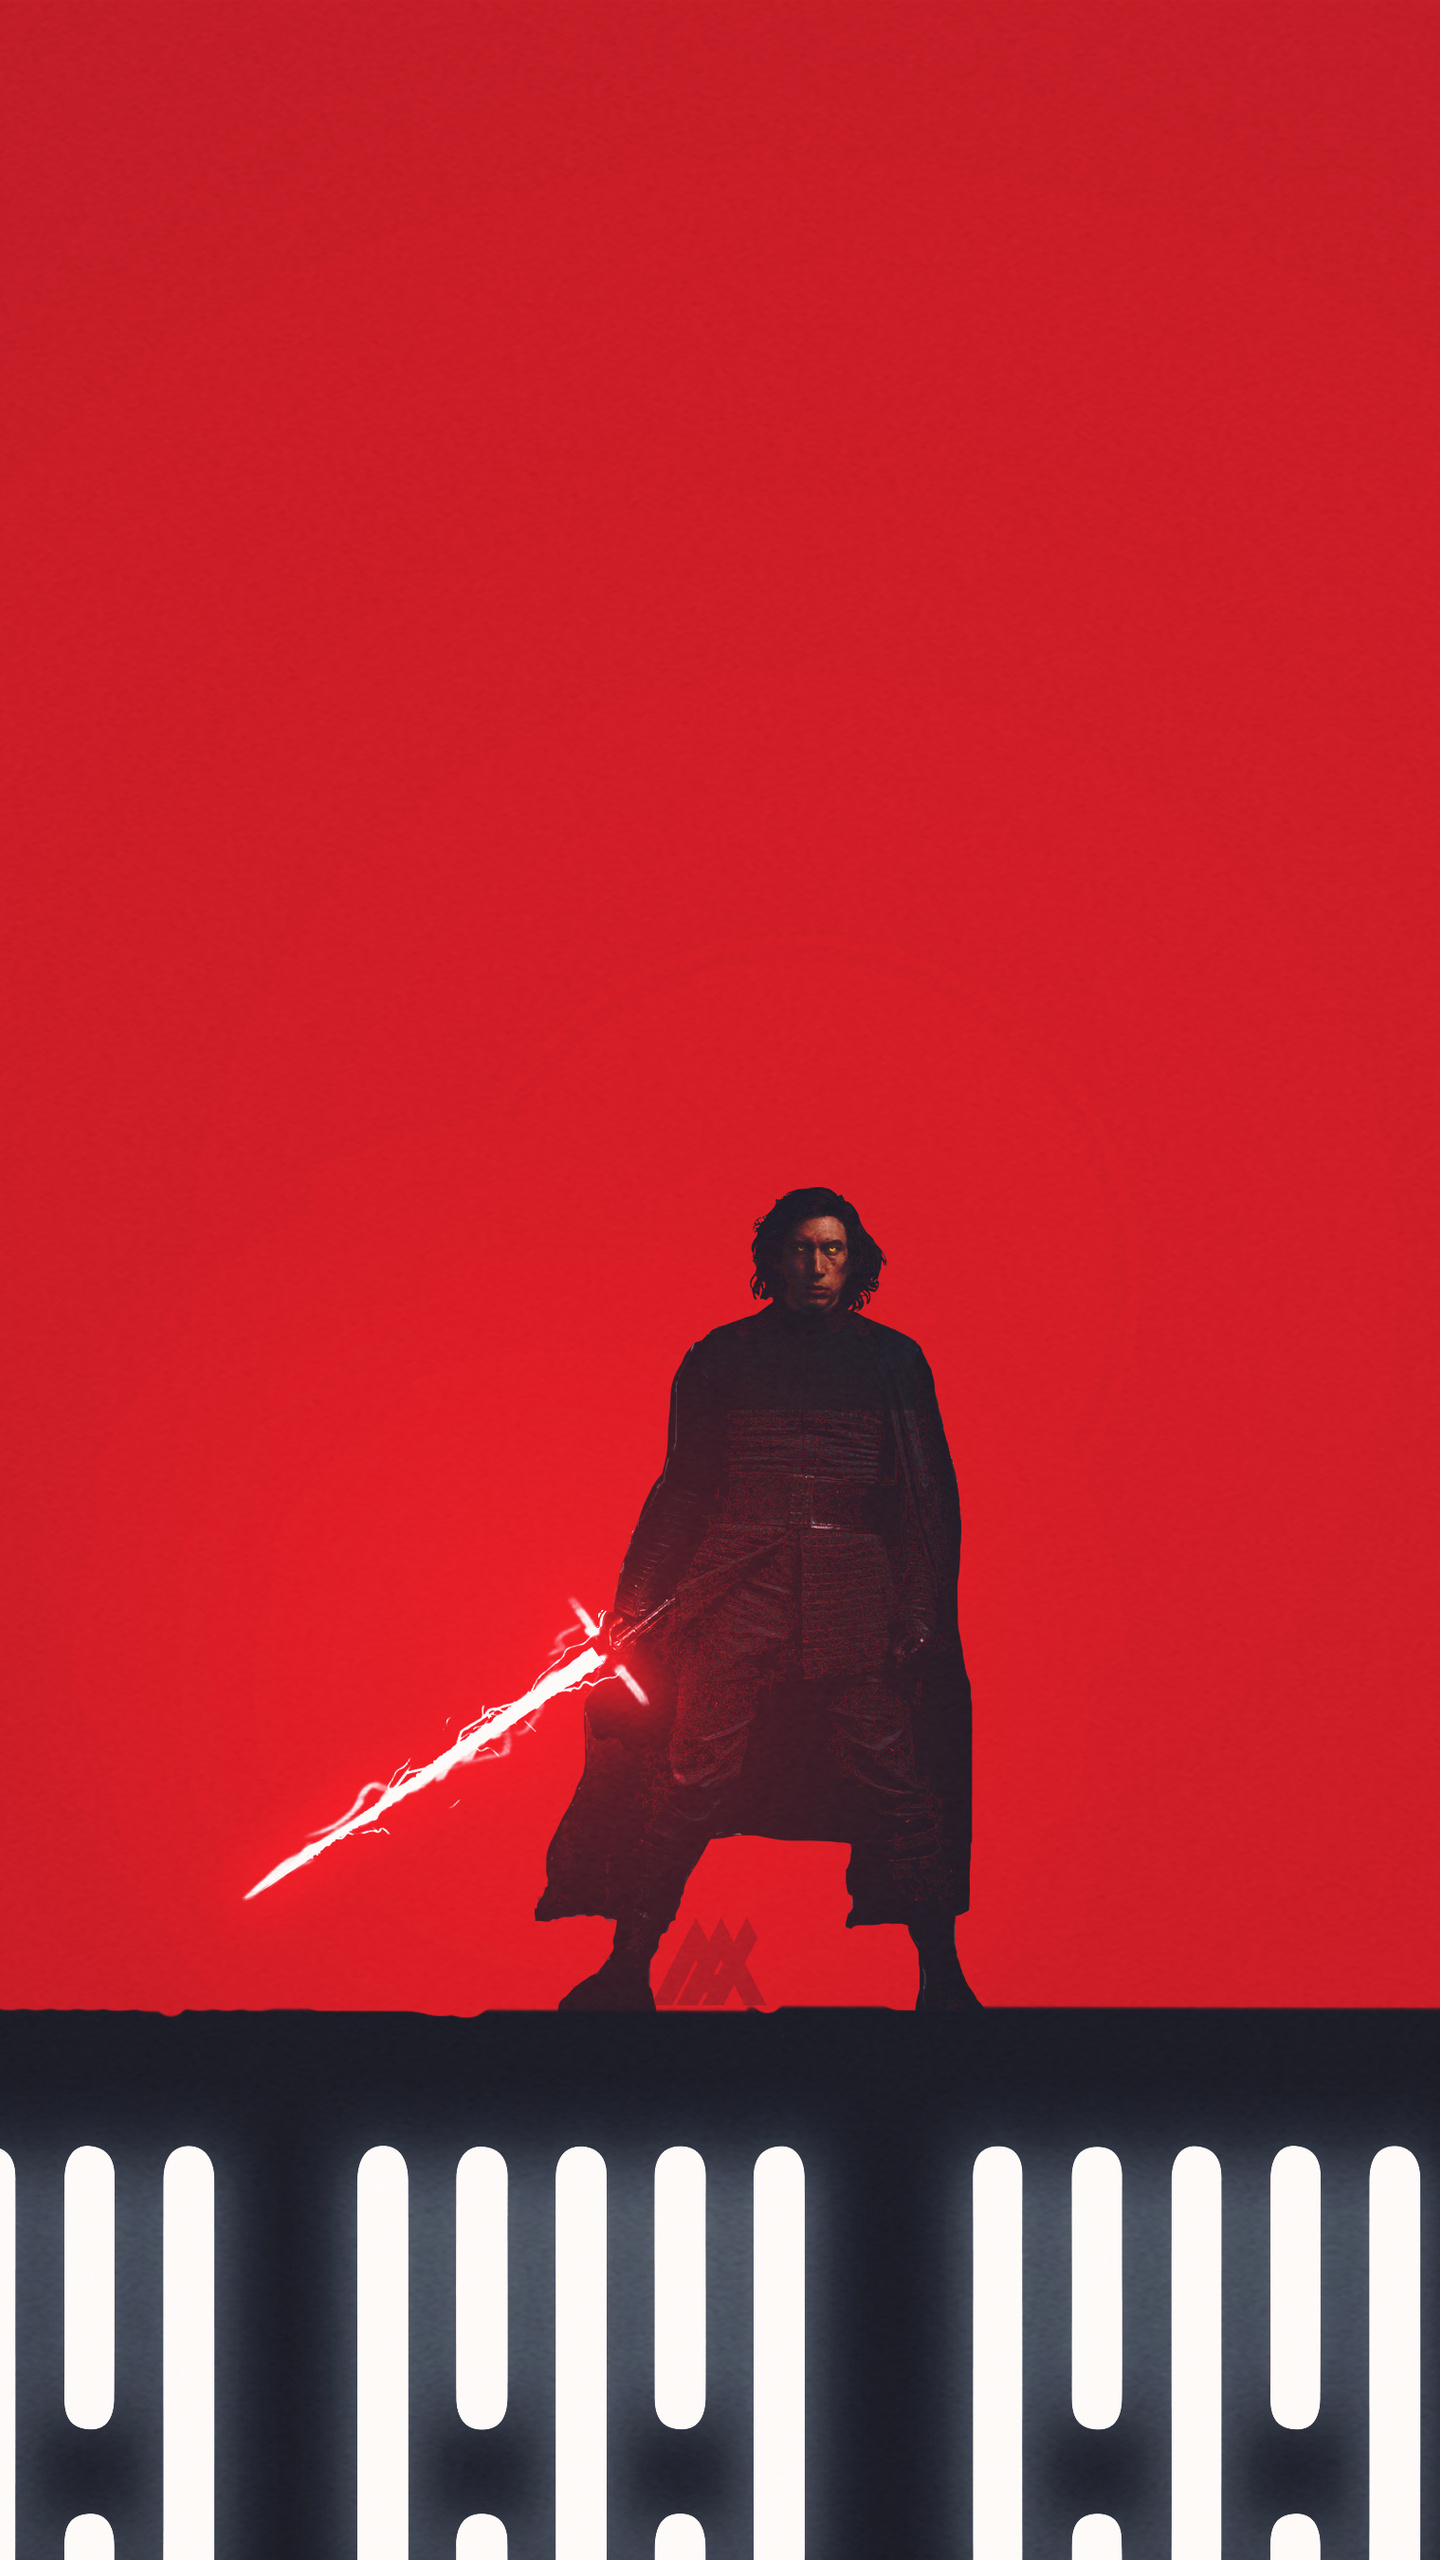 kylo-ren-star-wars-the-last-jedi-fan-art-5k-76.jpg